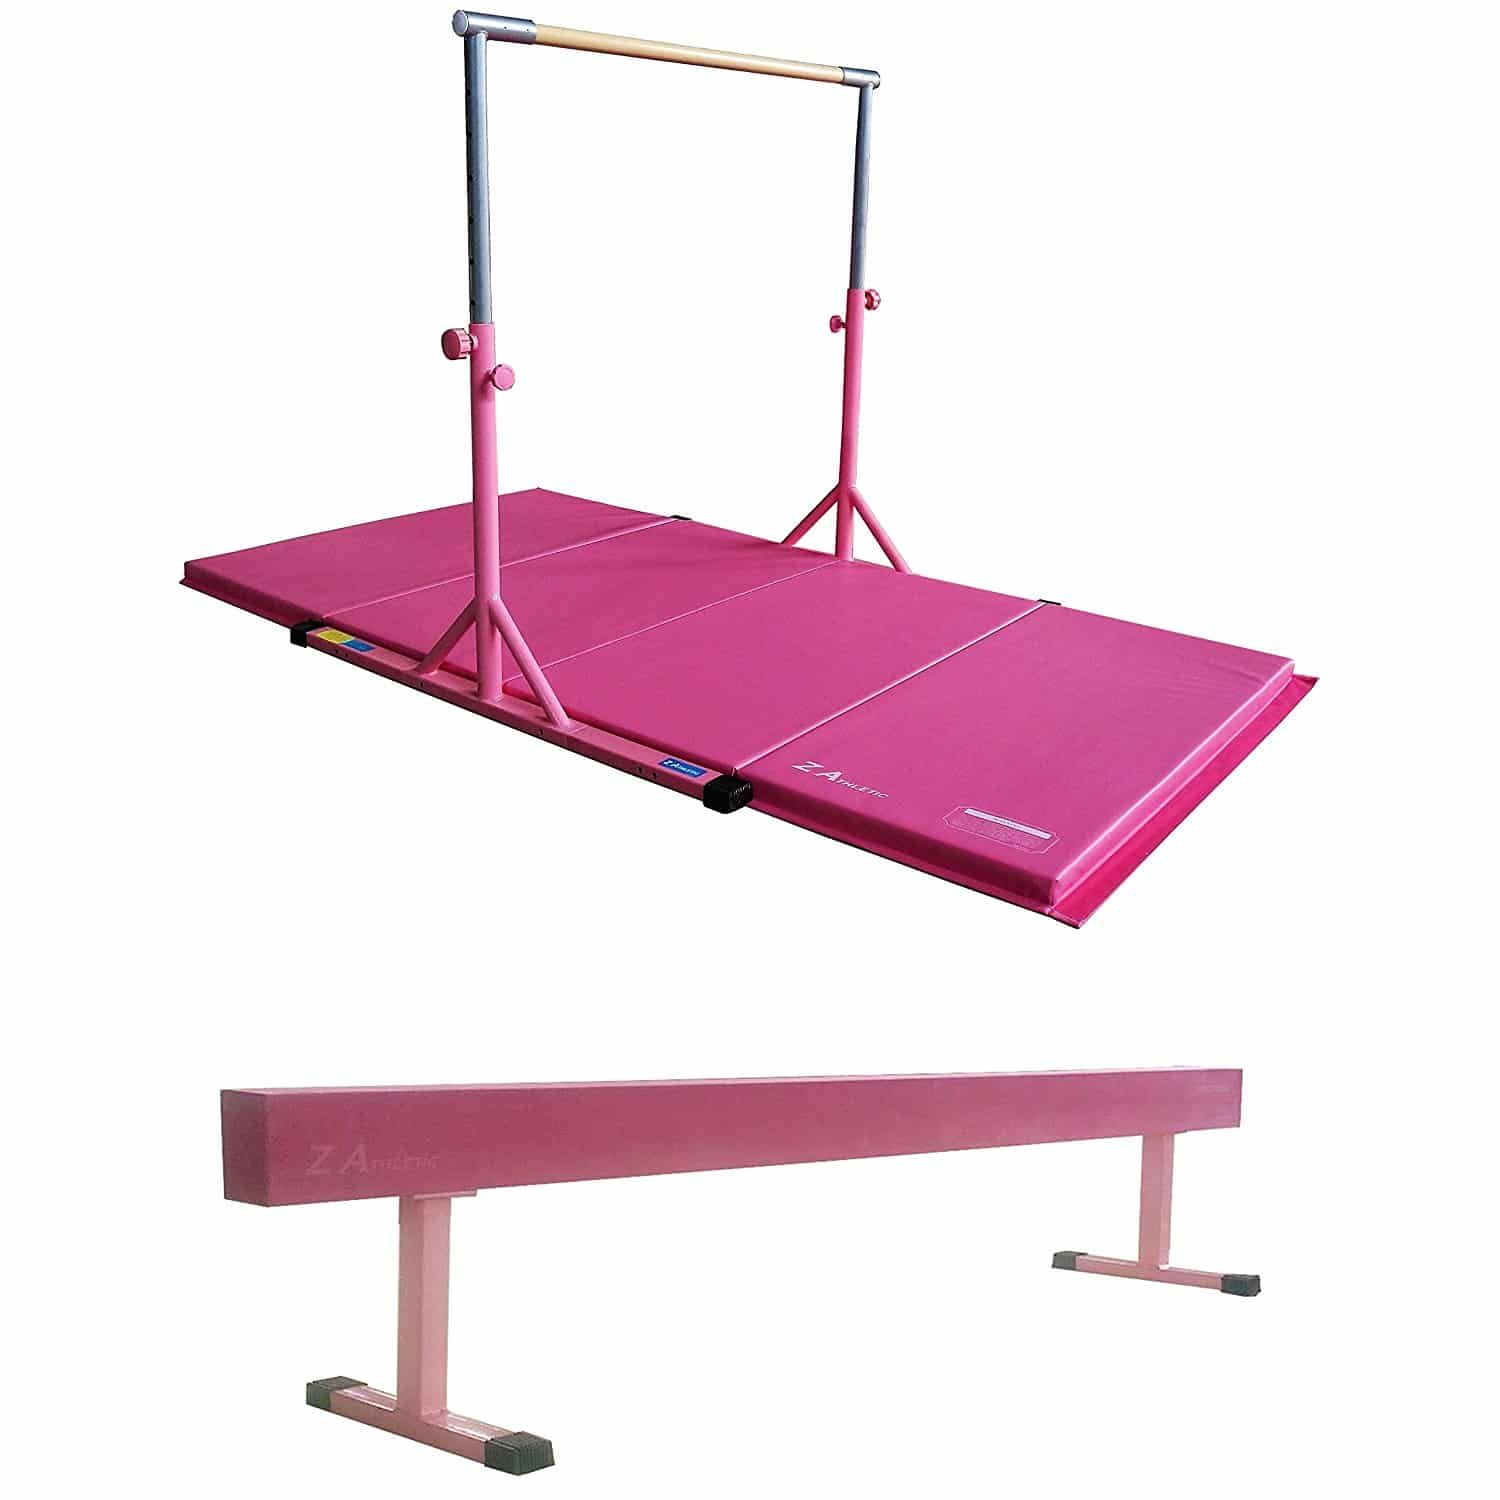 Top 10 Best Gymnastics Bars In 2020 Reviews With Images